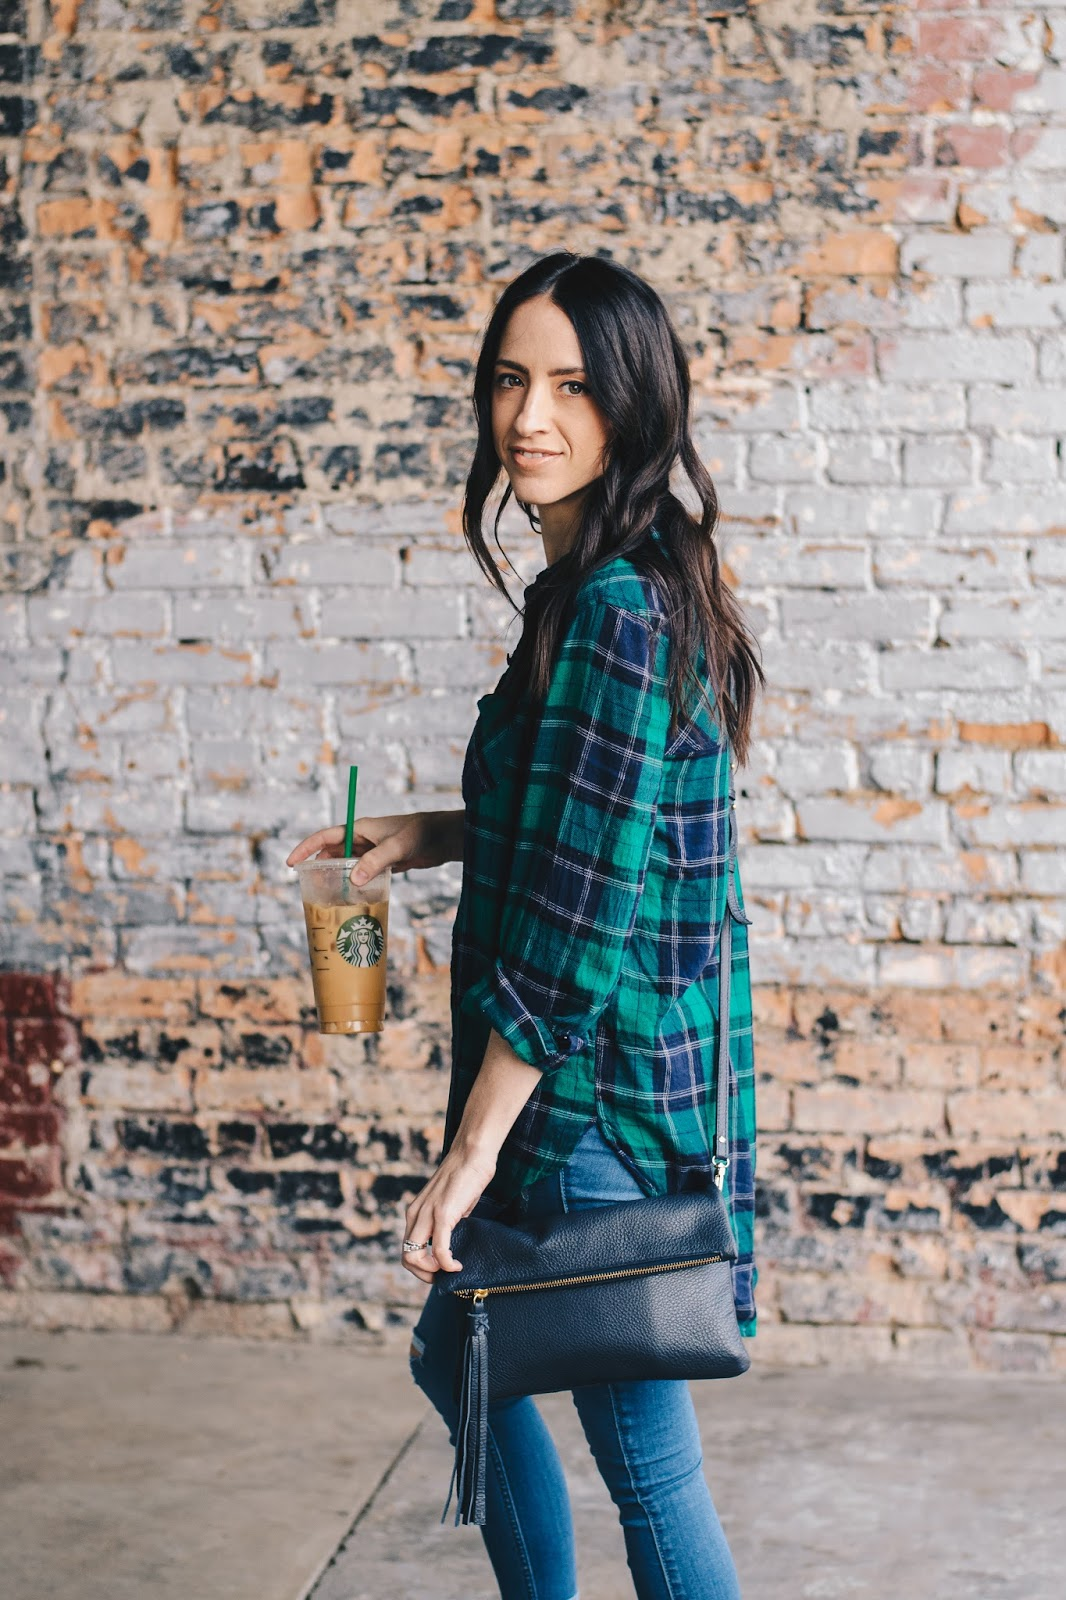 Navy fringe cross body bag and a casual plaid top